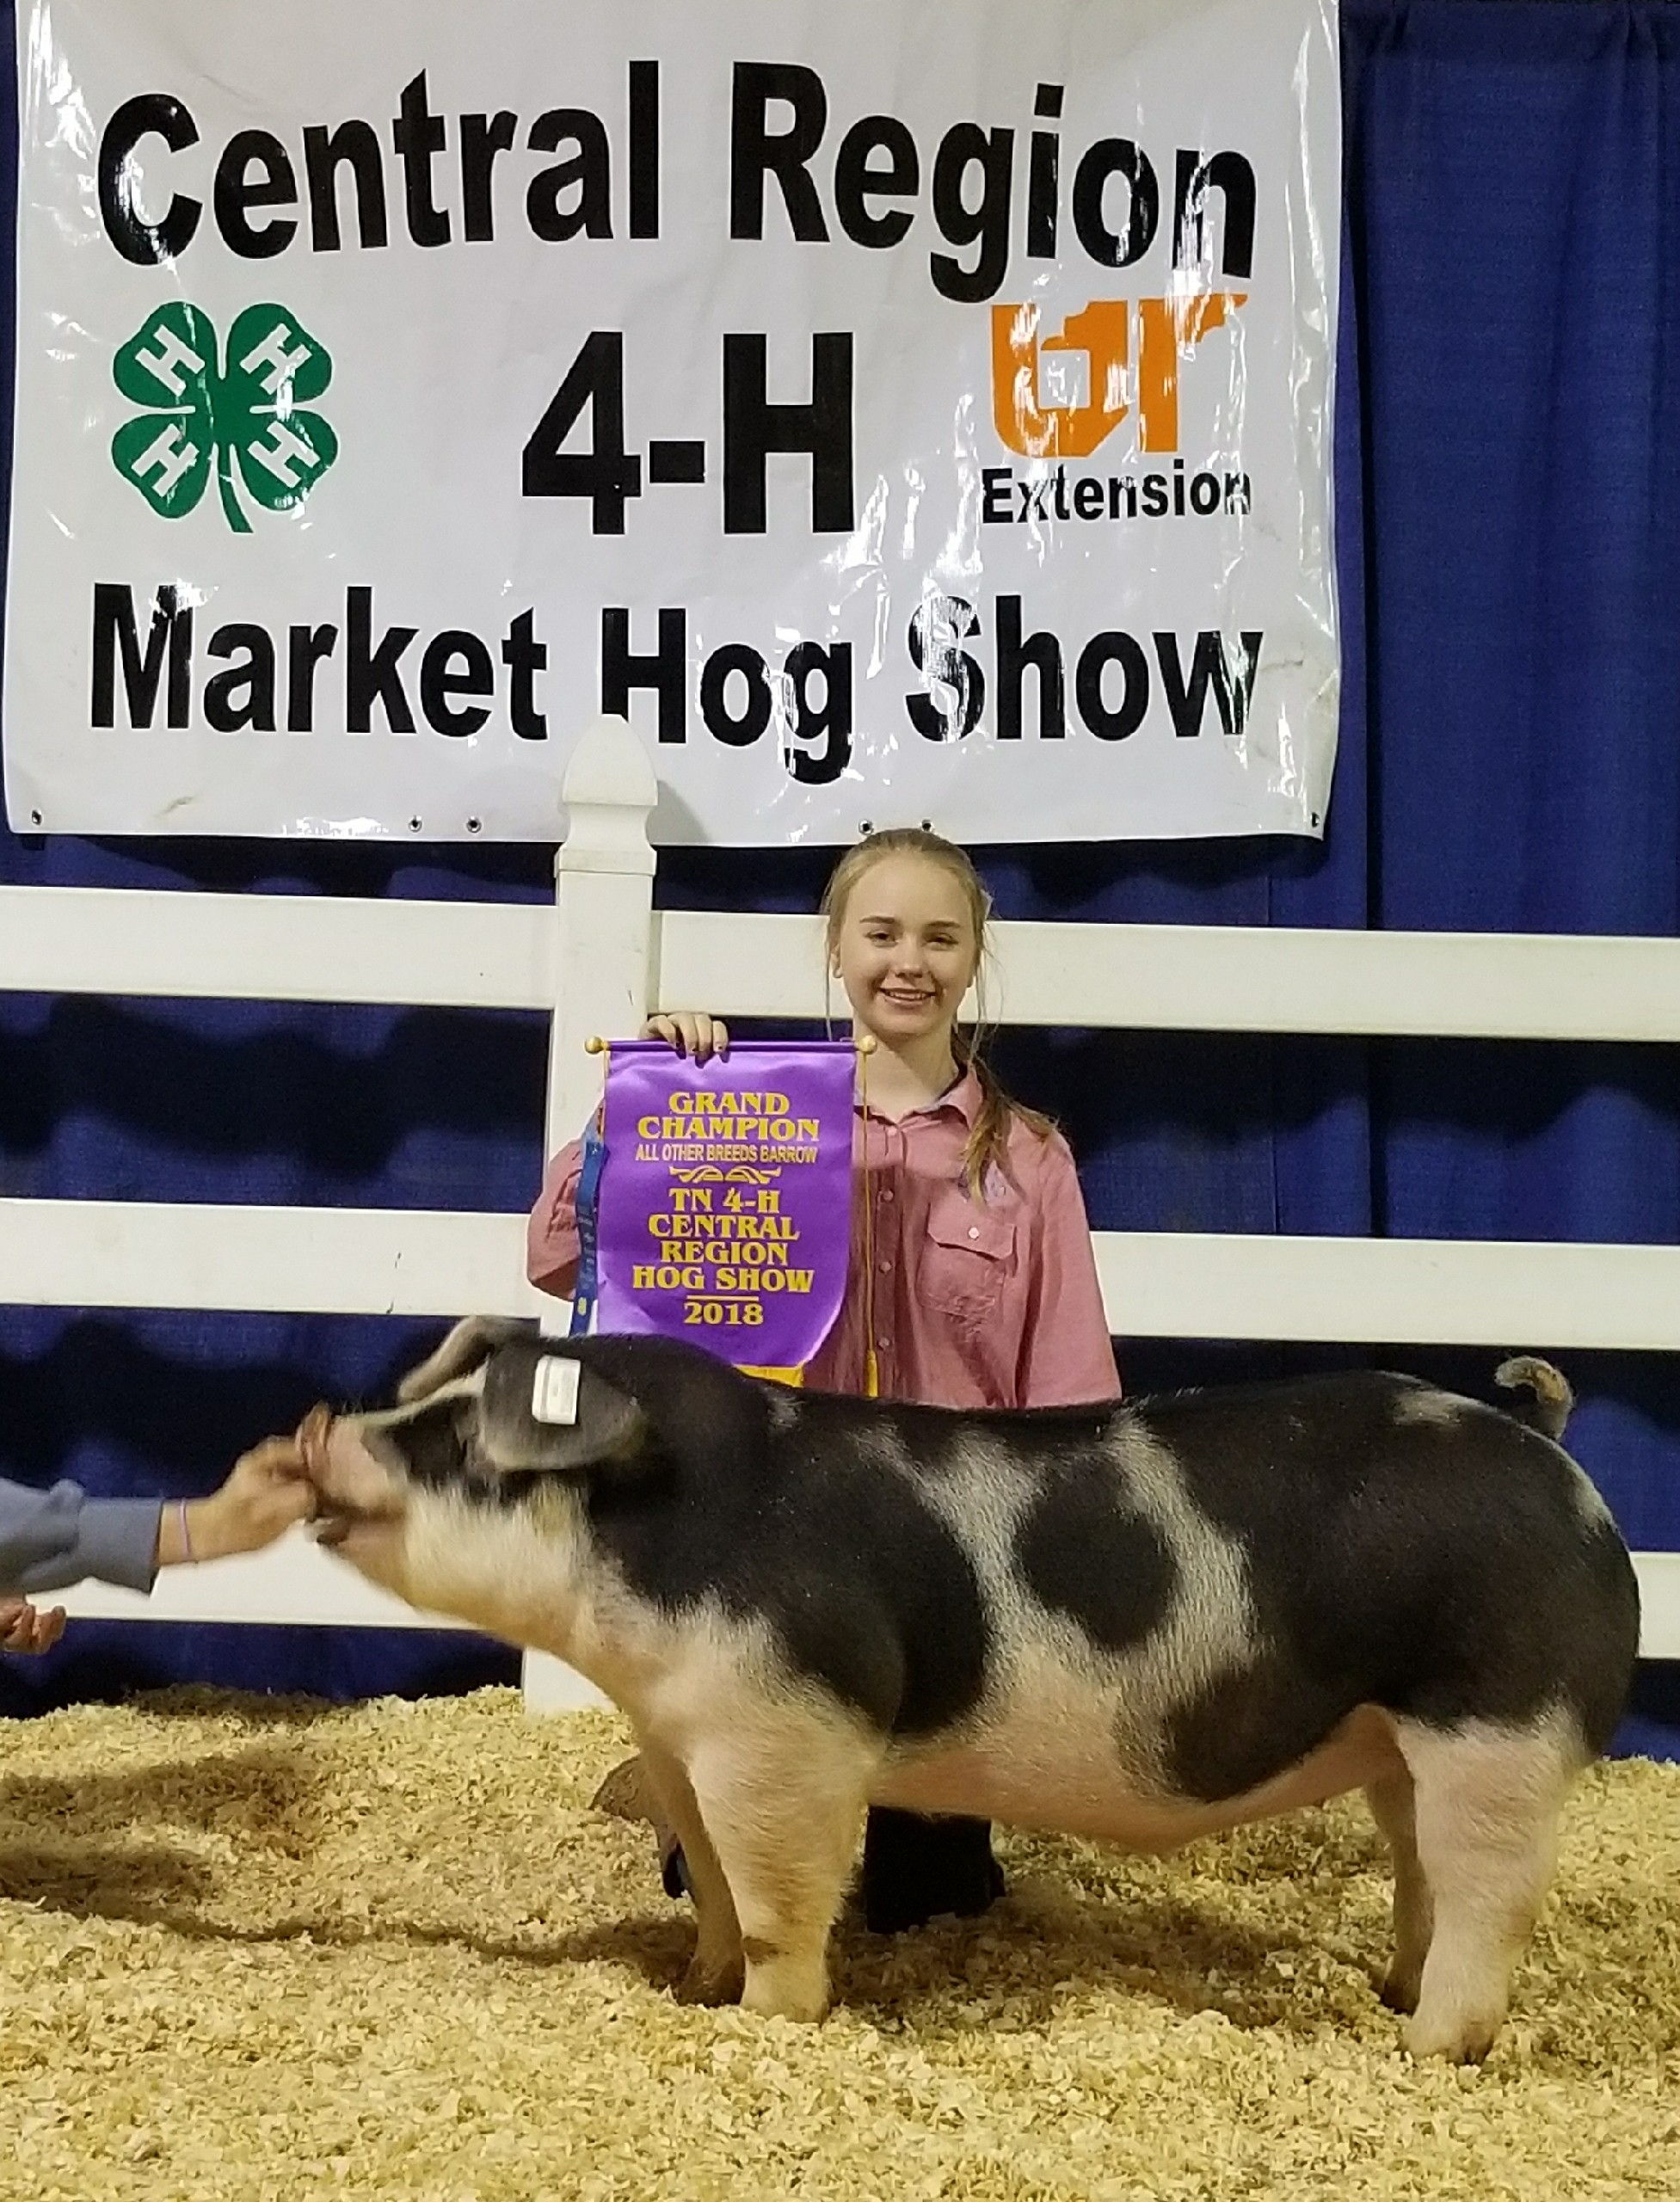 Hannah Sanders 2018 Tennessee Central Region Show Central Region Champion Spot Barrow 2018 Tennessee State Show    Reserve Champion AOB Barrow